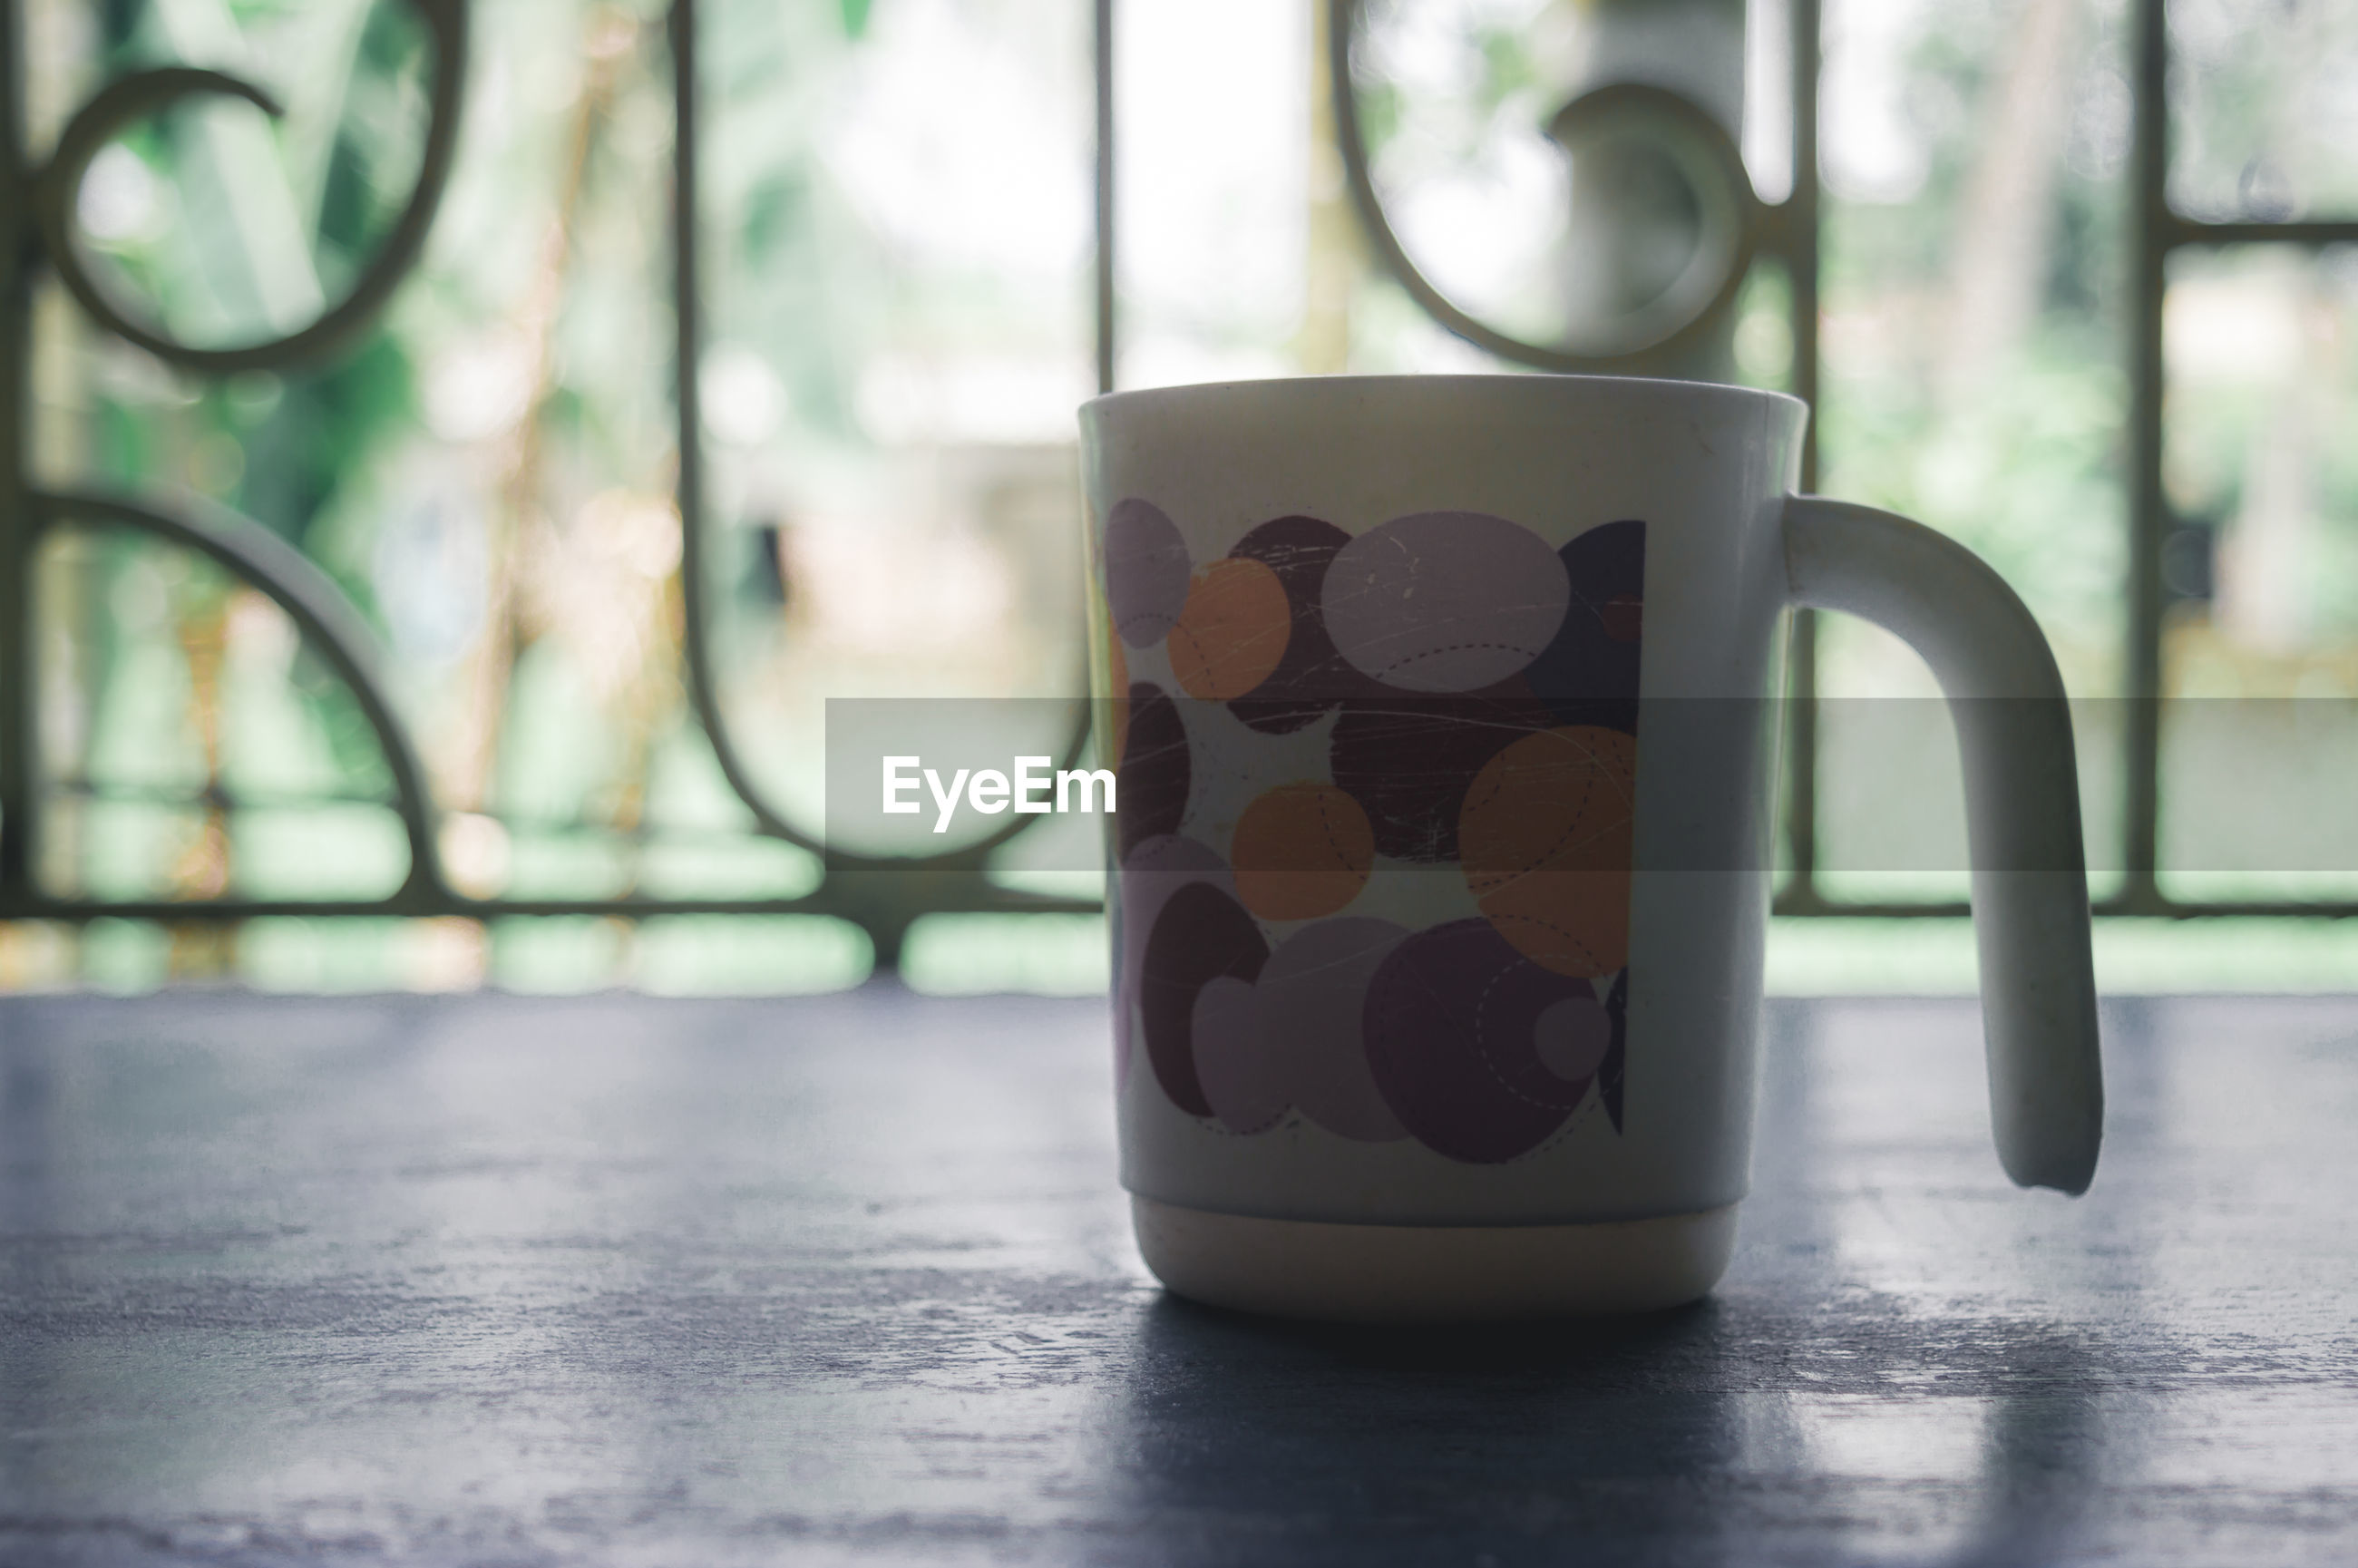 CLOSE-UP OF COFFEE CUP ON TABLE WITH REFLECTION